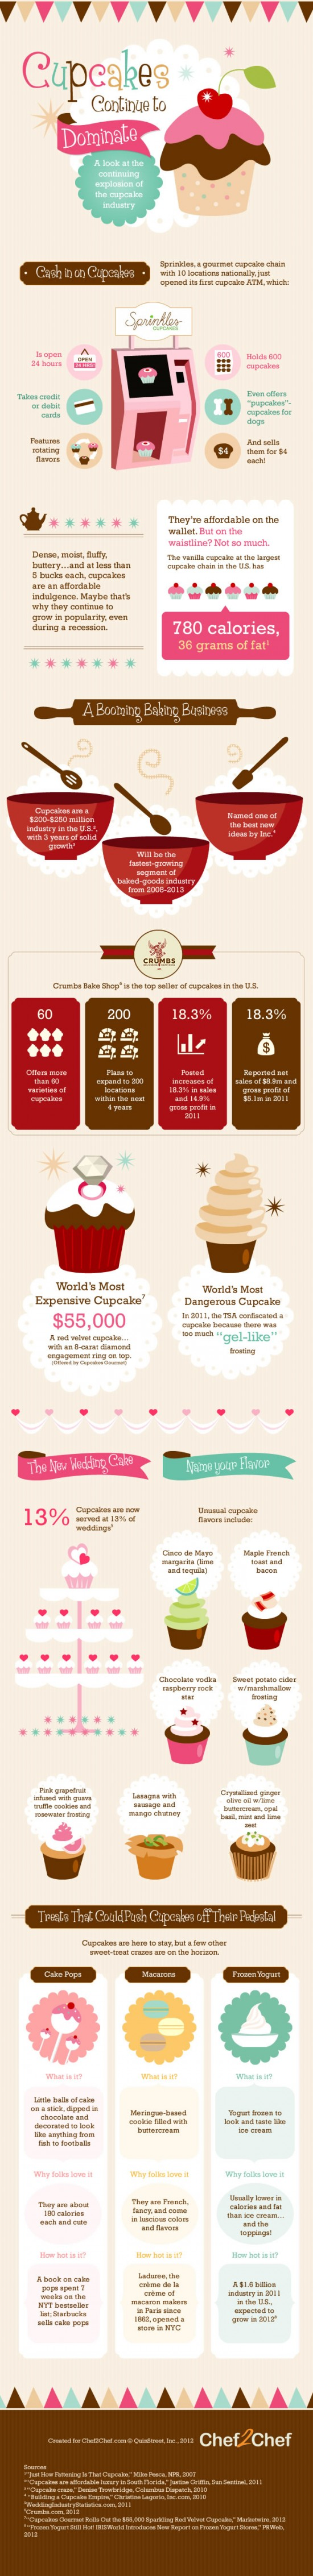 For The Love Of Cupcakes Cupcake Bakery Bakery Slogans Bakery